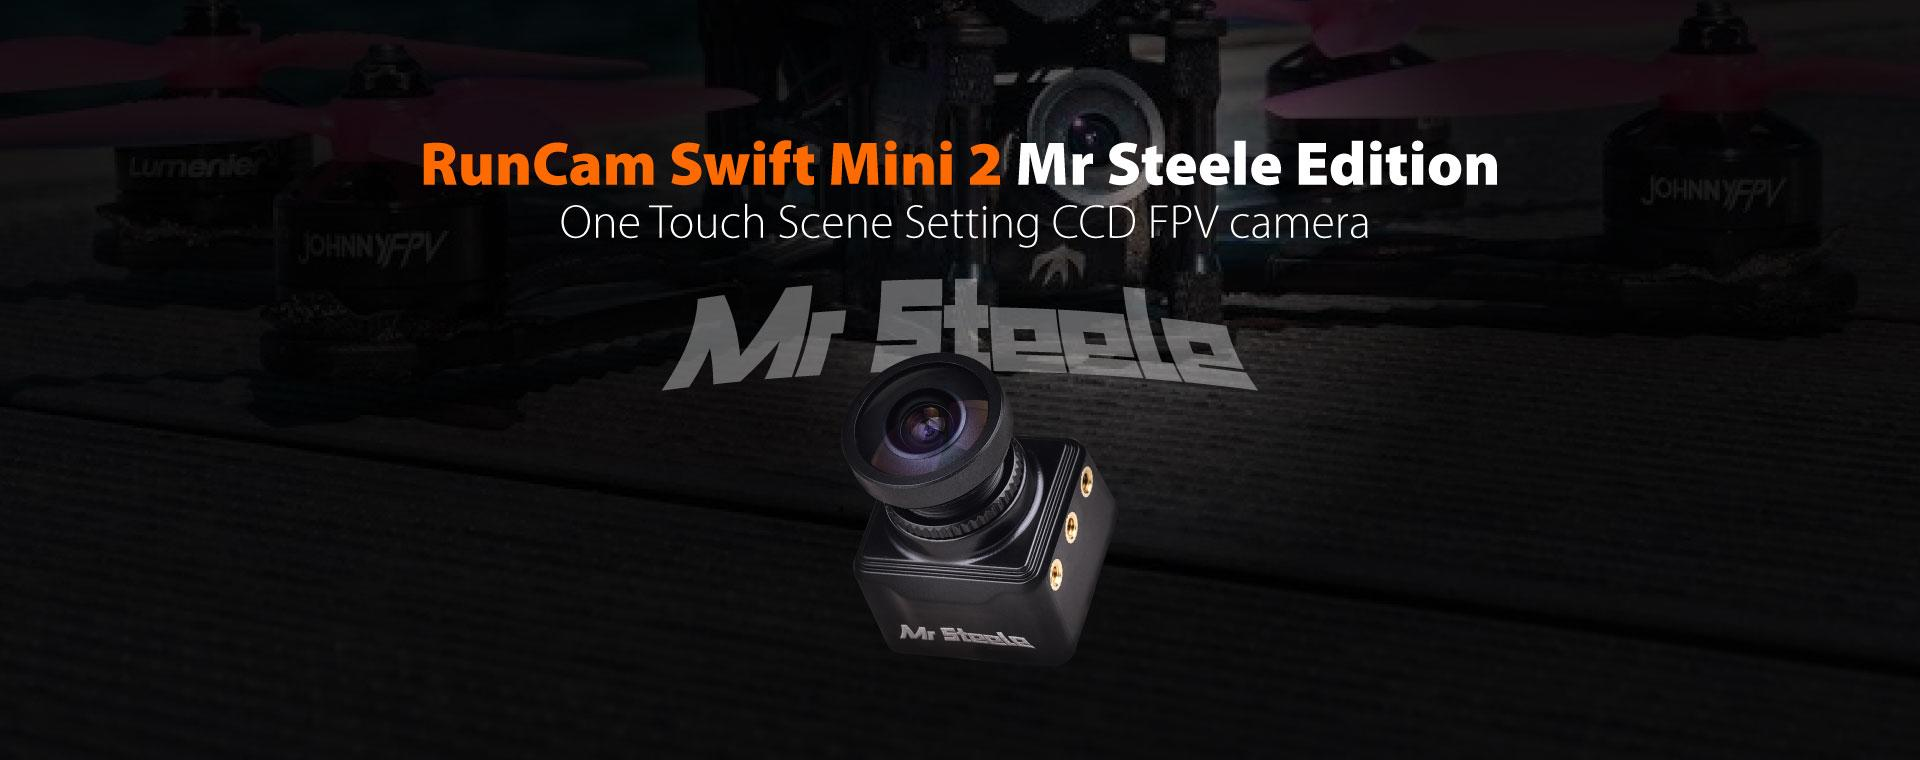 Mr Steele Swift 2 mini for camera